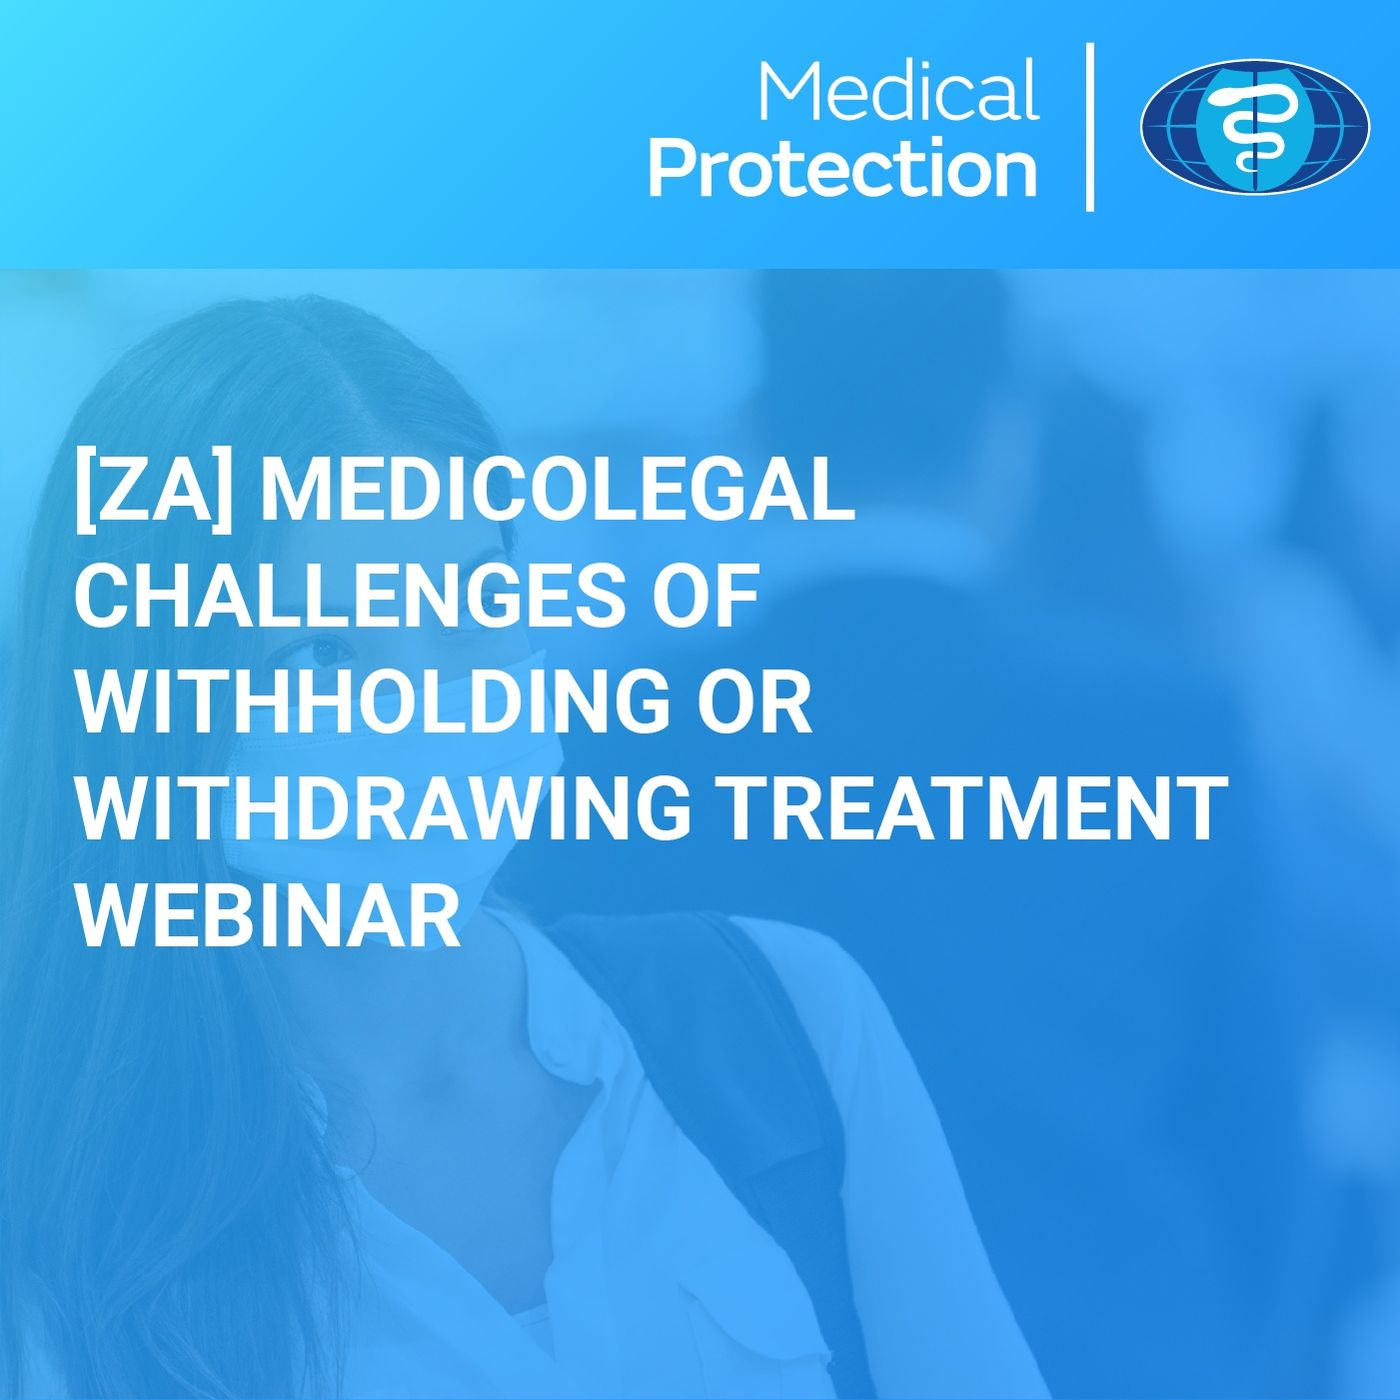 [ZA] Medicolegal Challenges of Withholding or Withdrawing Treatment Webinar